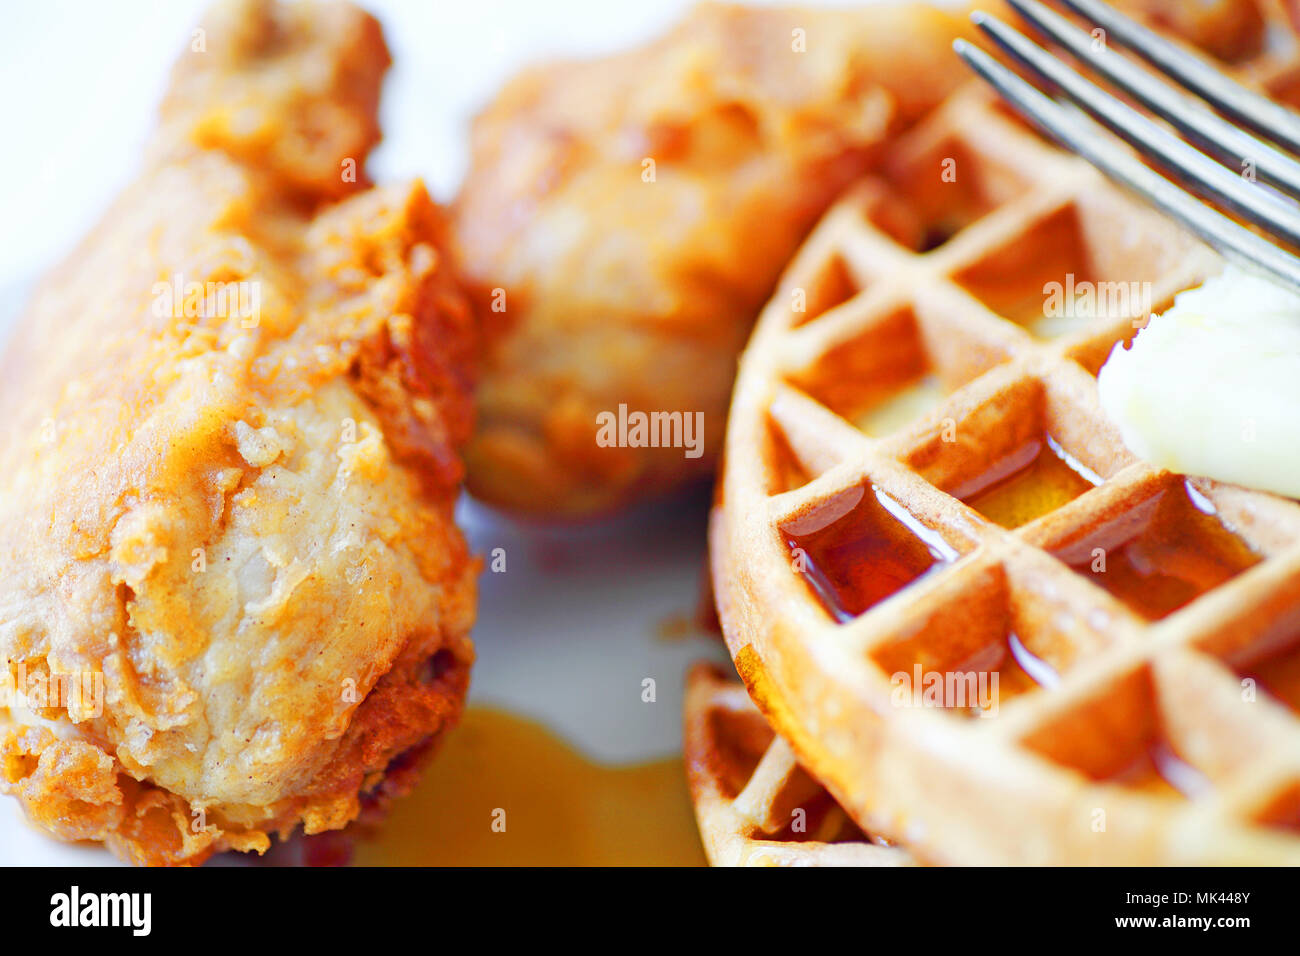 Closeup of fried chicken legs, Belgian waffles, butter and maple syrup with a fork - Stock Image